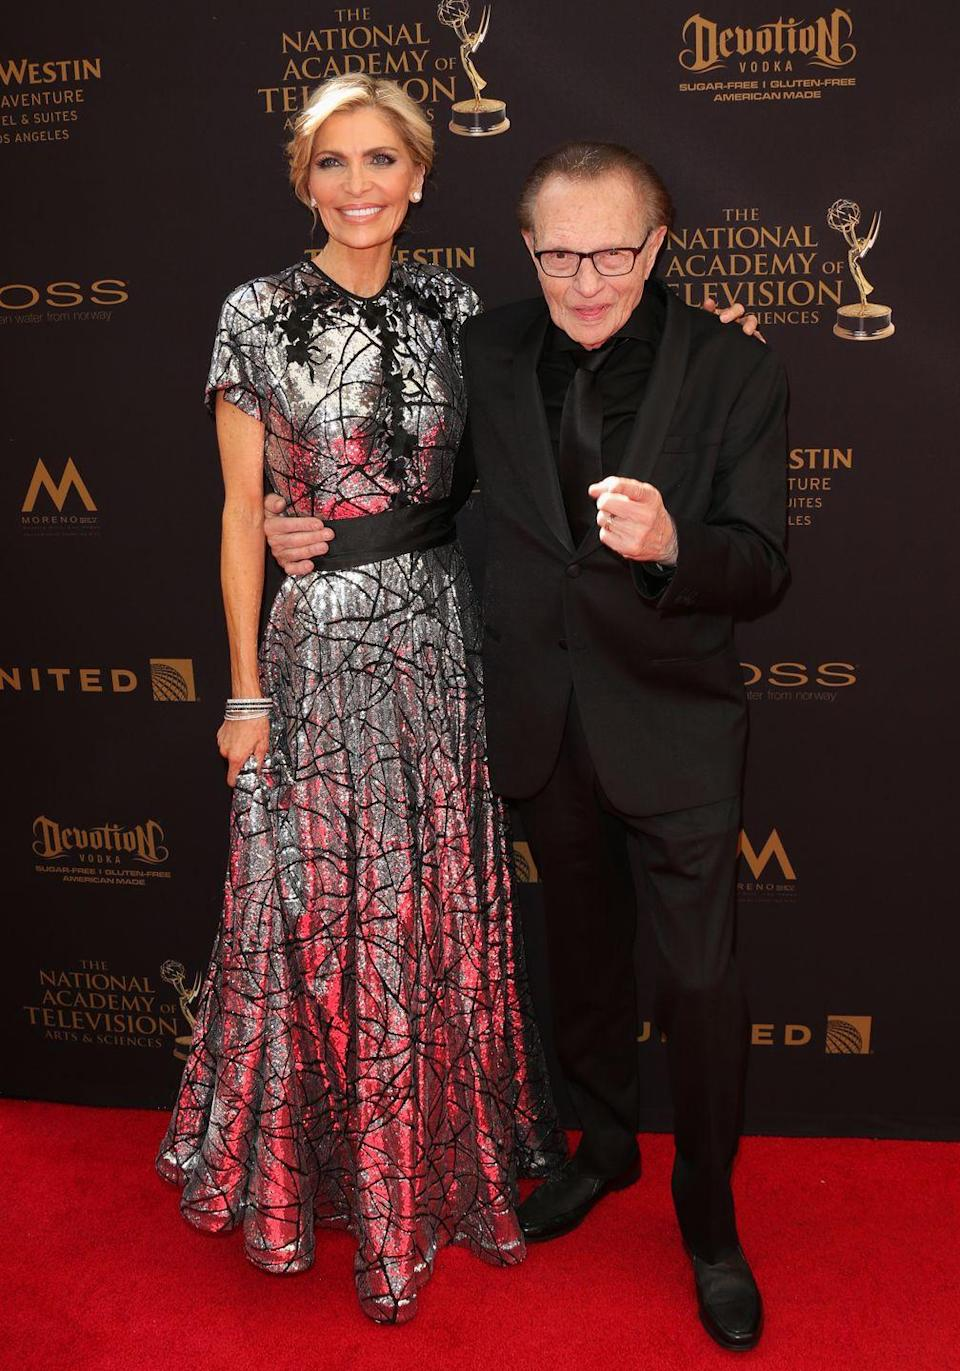 """<p>Television host Larry King has been married <a href=""""https://www.distractify.com/p/celebrities-multiple-marriages"""" rel=""""nofollow noopener"""" target=""""_blank"""" data-ylk=""""slk:eight times"""" class=""""link rapid-noclick-resp"""">eight times</a>, but technically had seven wives. His most recent marriage to actress Shawn Southwick ended in 2019. Before he married Shawn, Larry was with businesswoman Julie Alexander from 1989 to 1992, math teacher Sharon Lepore from 1976 to 1983, his high school sweetheart Alene Akins from 1968 to 1971 (and he was previously married to her from 1961 to 1963), Mickey Sutphin from 1964 to 1967, and Annette Kay in 1961. His first wife was Freda Miller; they married in 1952. He had his marriage with her annulled in 1953.<br></p>"""